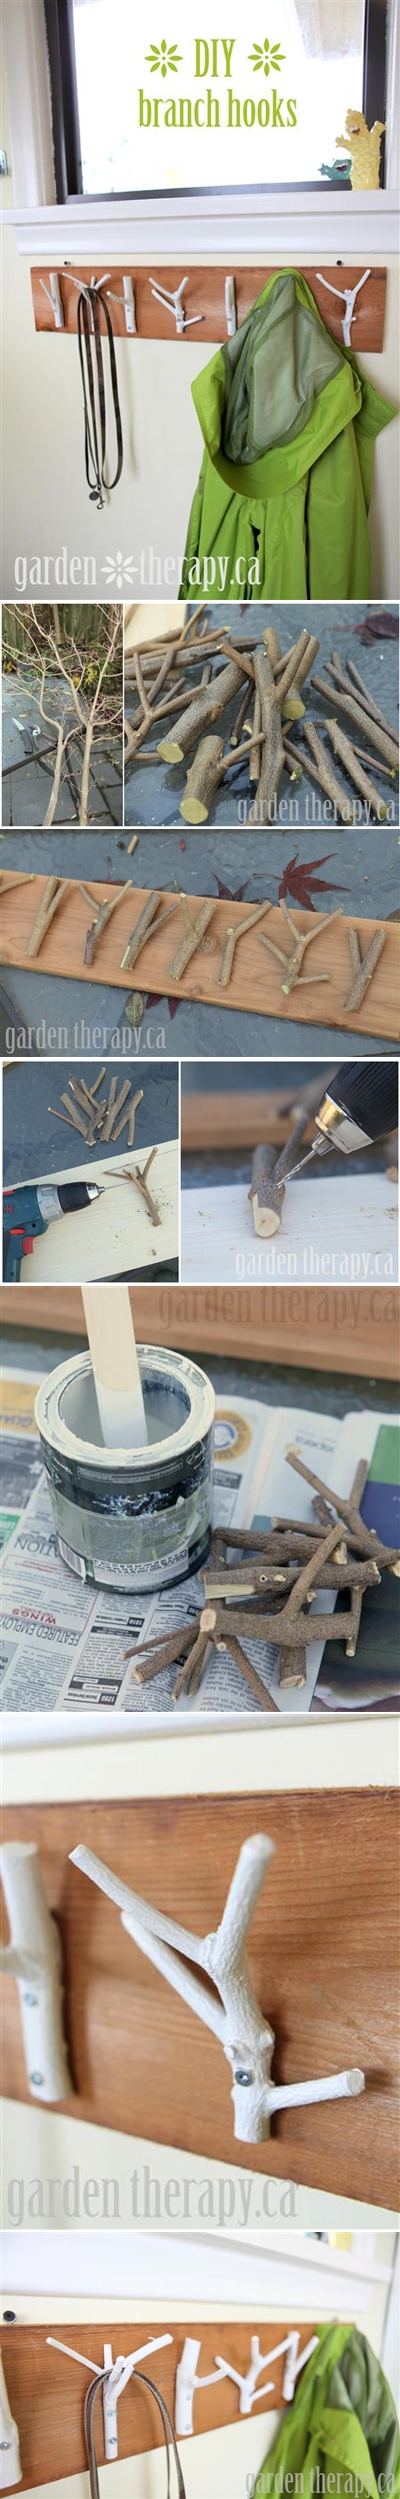 How to make cool DIY coat racks with branches step by step tutorial instructions